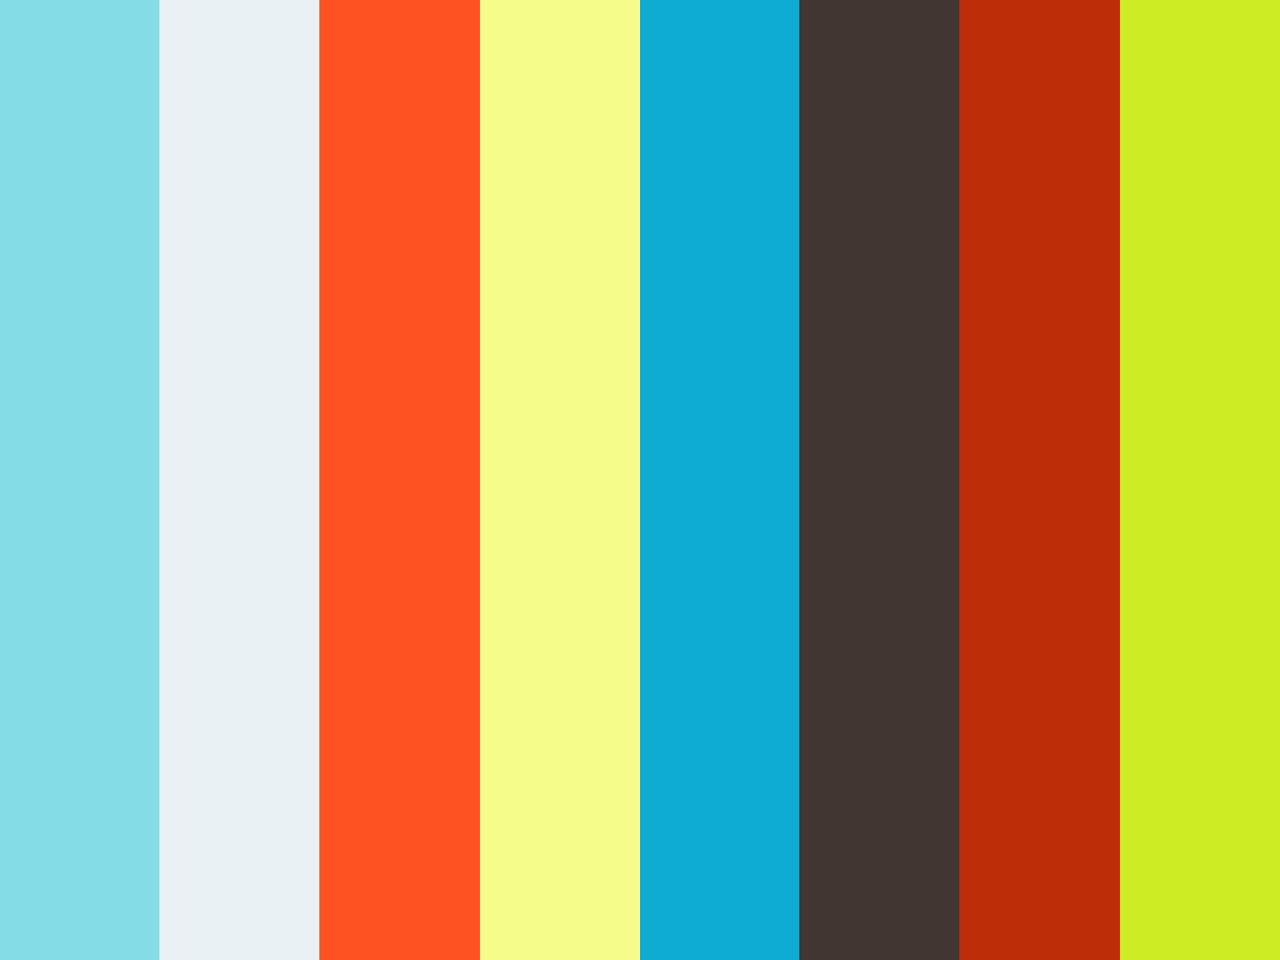 HCMS Group Healthcare Reform Webinar 1